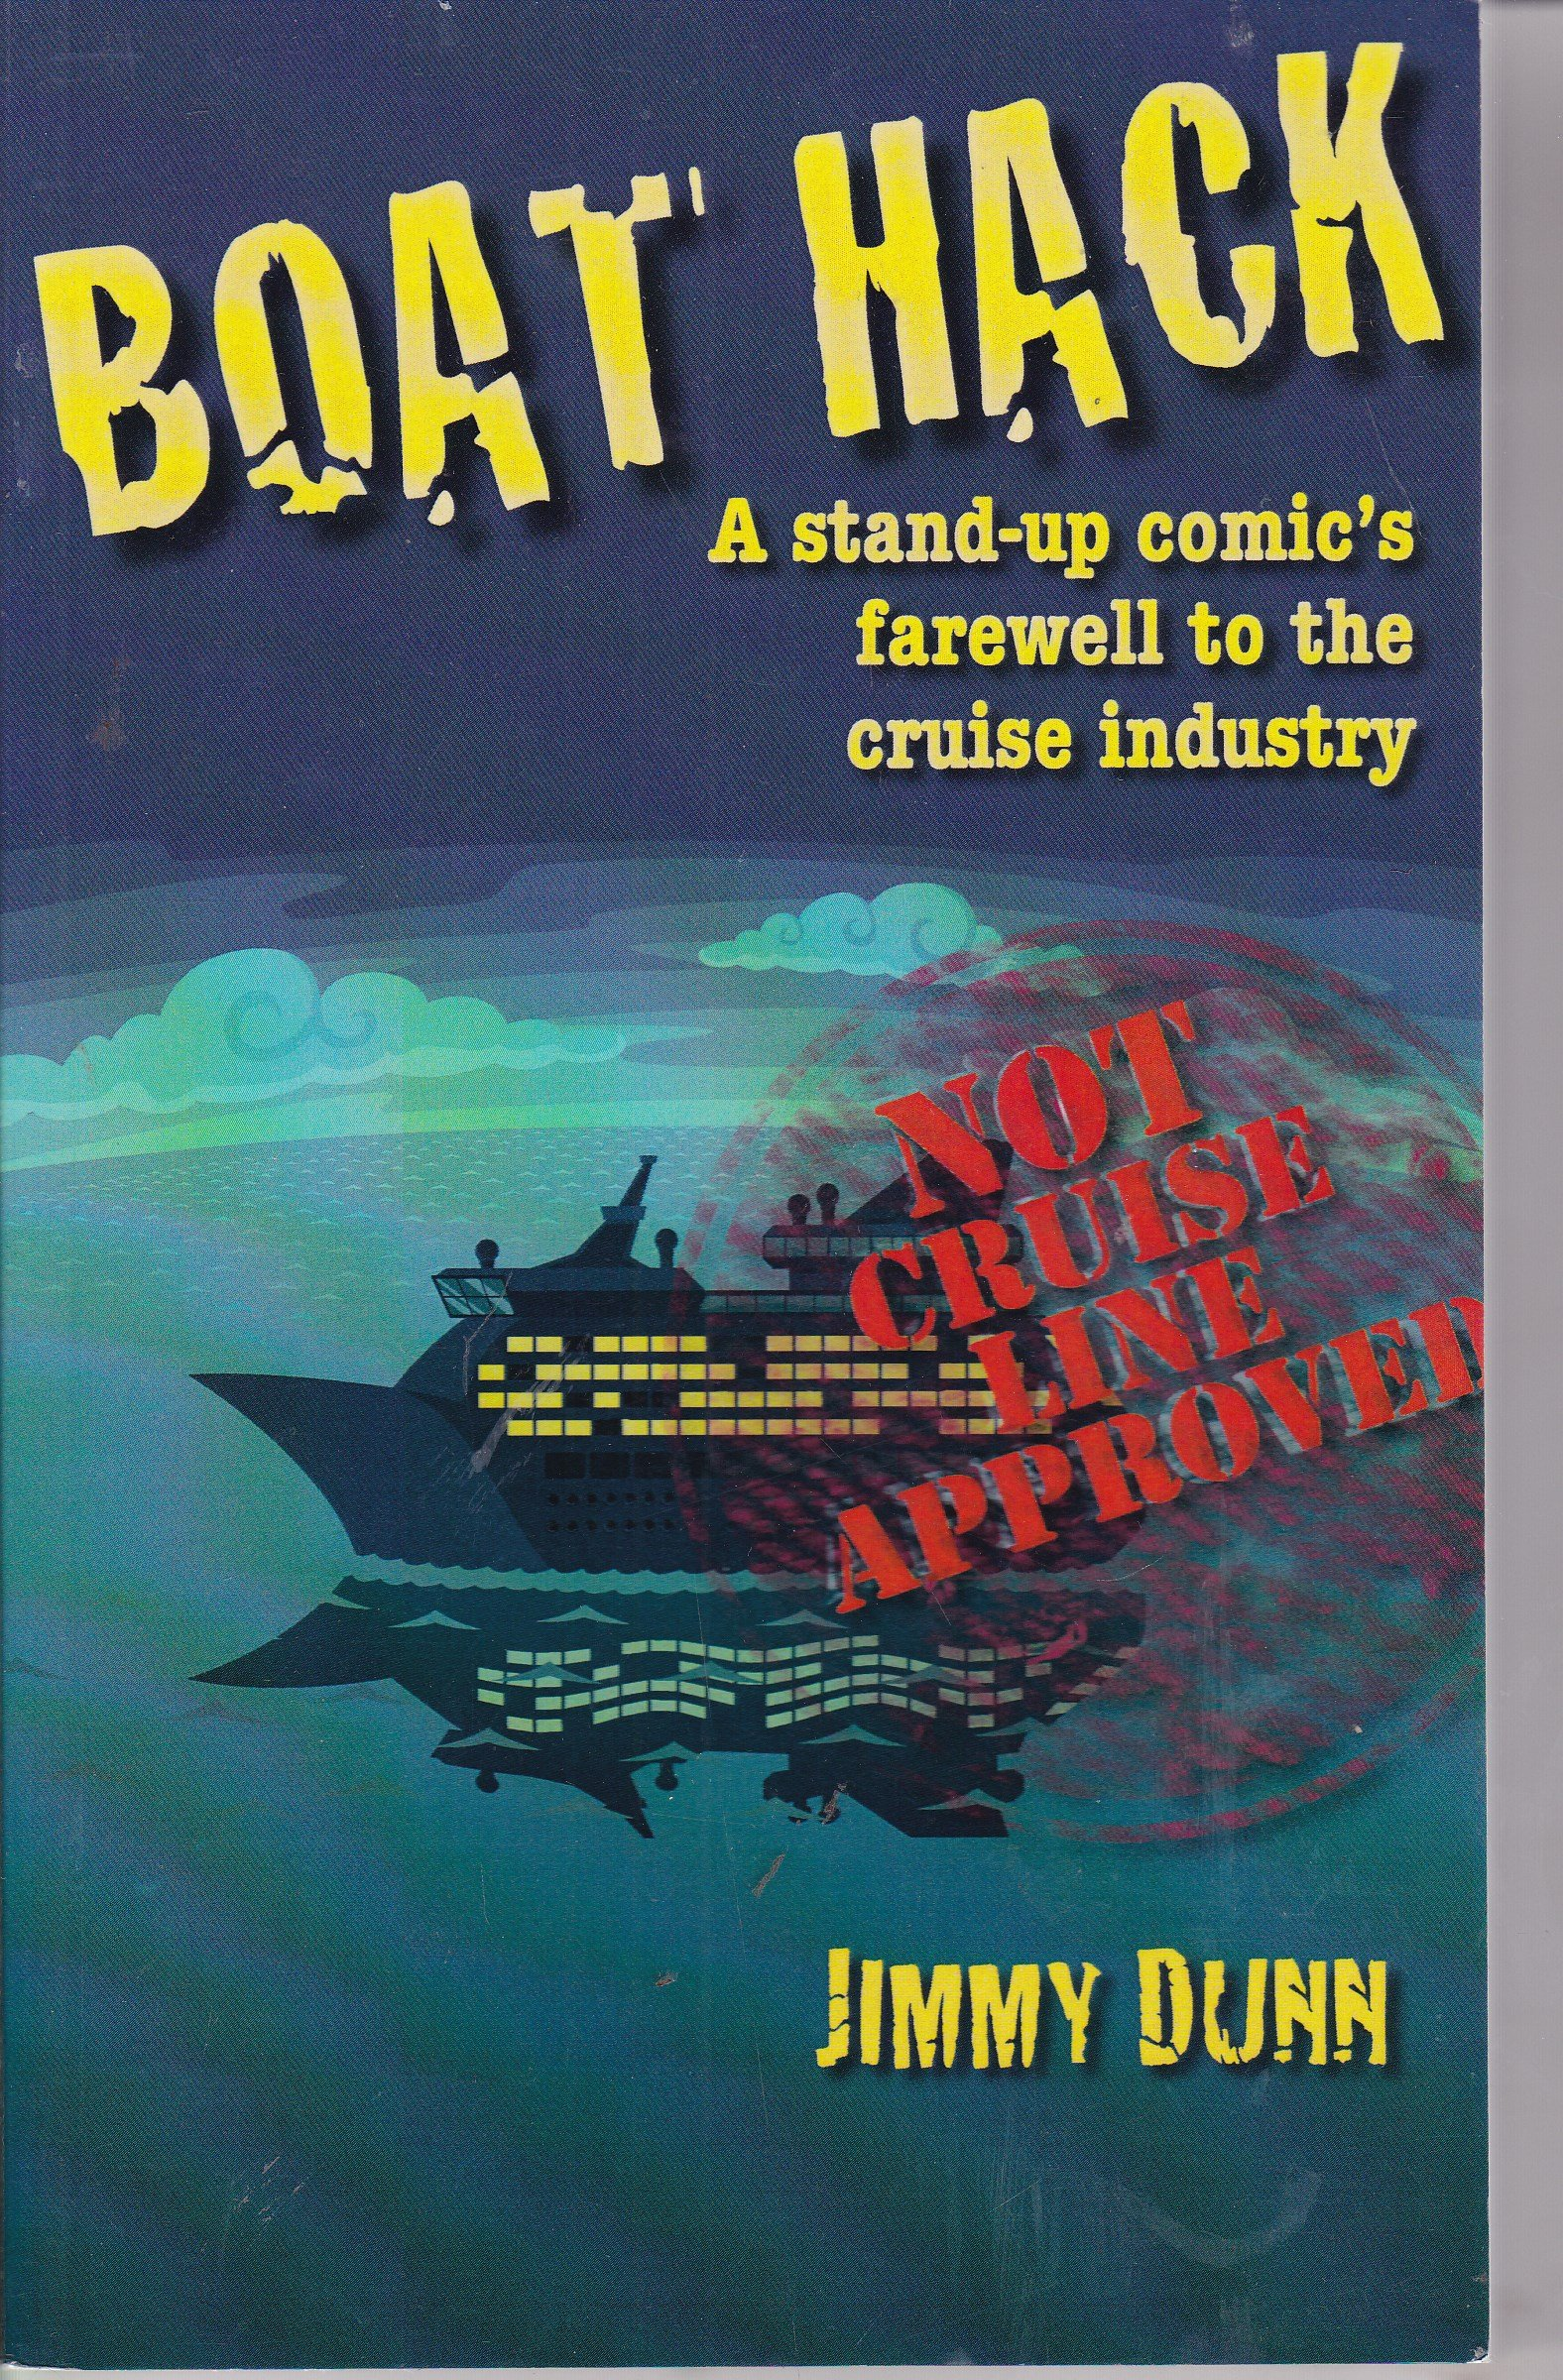 Boat Hack: A stand-up comic's farewell to the cruise industry: Not